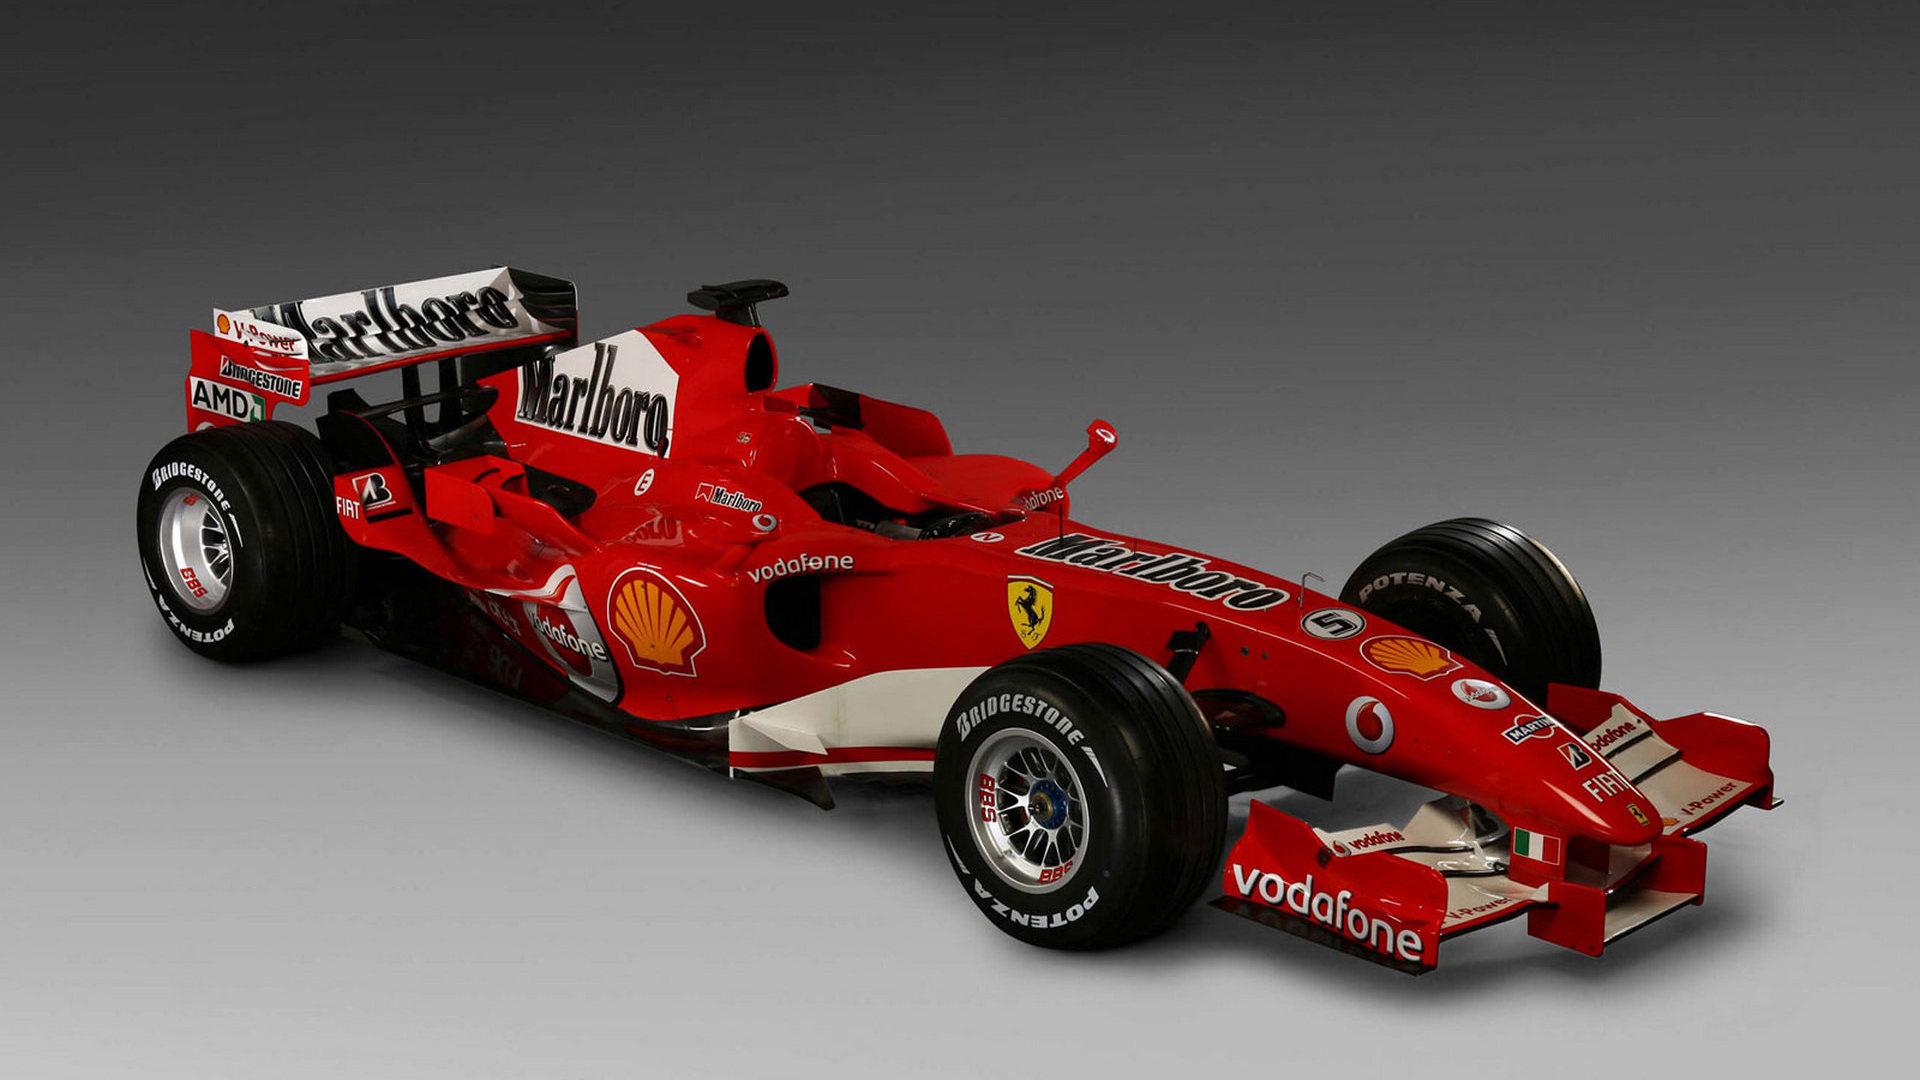 Hd Wallpapers Formula Car Launches Fansite Com